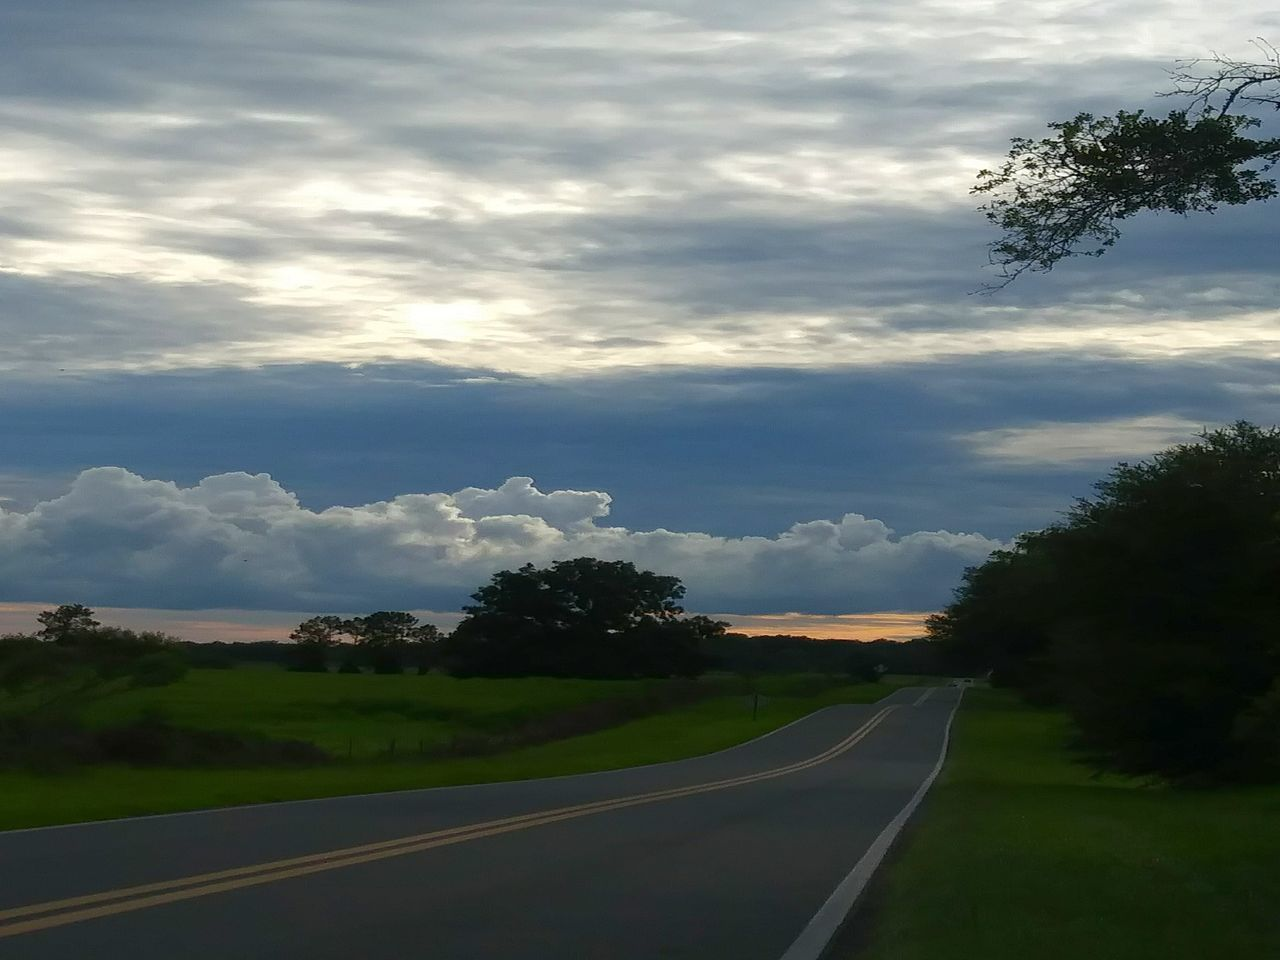 road, cloud - sky, sky, tree, the way forward, transportation, nature, outdoors, tranquil scene, no people, scenics, landscape, tranquility, day, beauty in nature